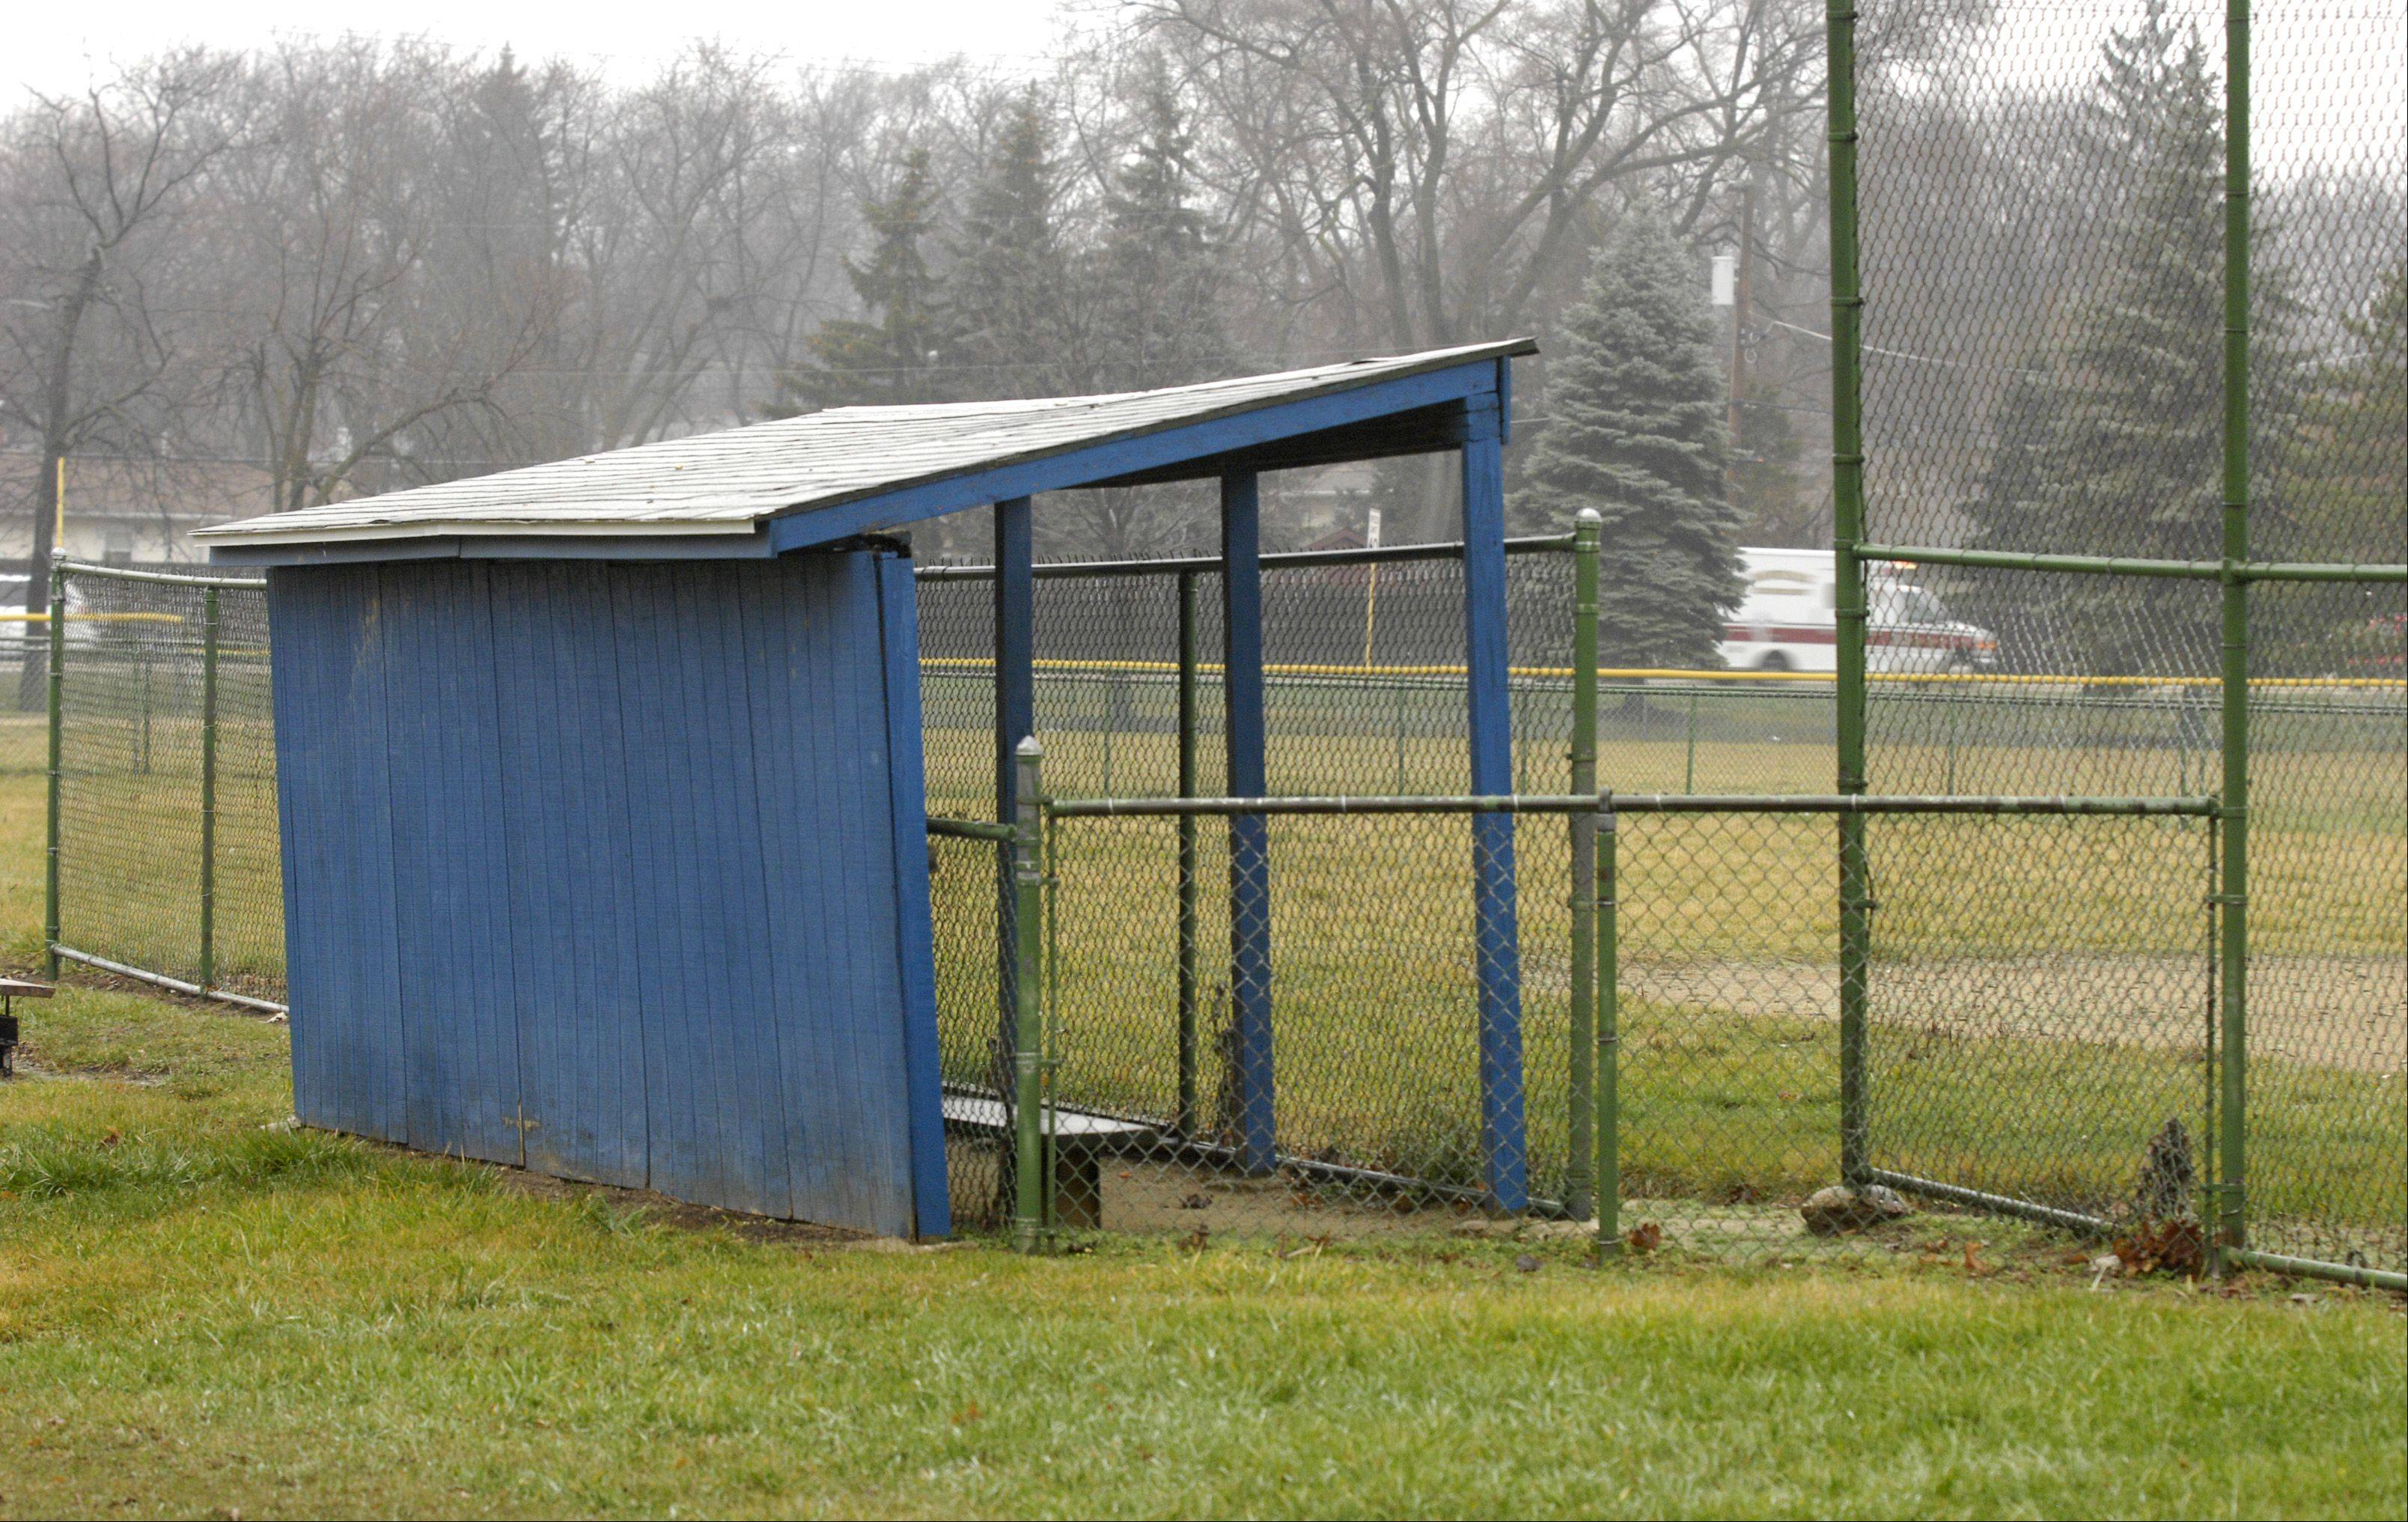 The village of Hanover Park and Metropolitan Water Reclamation District have agreed to a 39-year lease for property featuring football and baseball fields along Barrington Road near Irving Park Road. The village now is awaiting results from soil samples to determine whether the site can accommodate a soccer field.